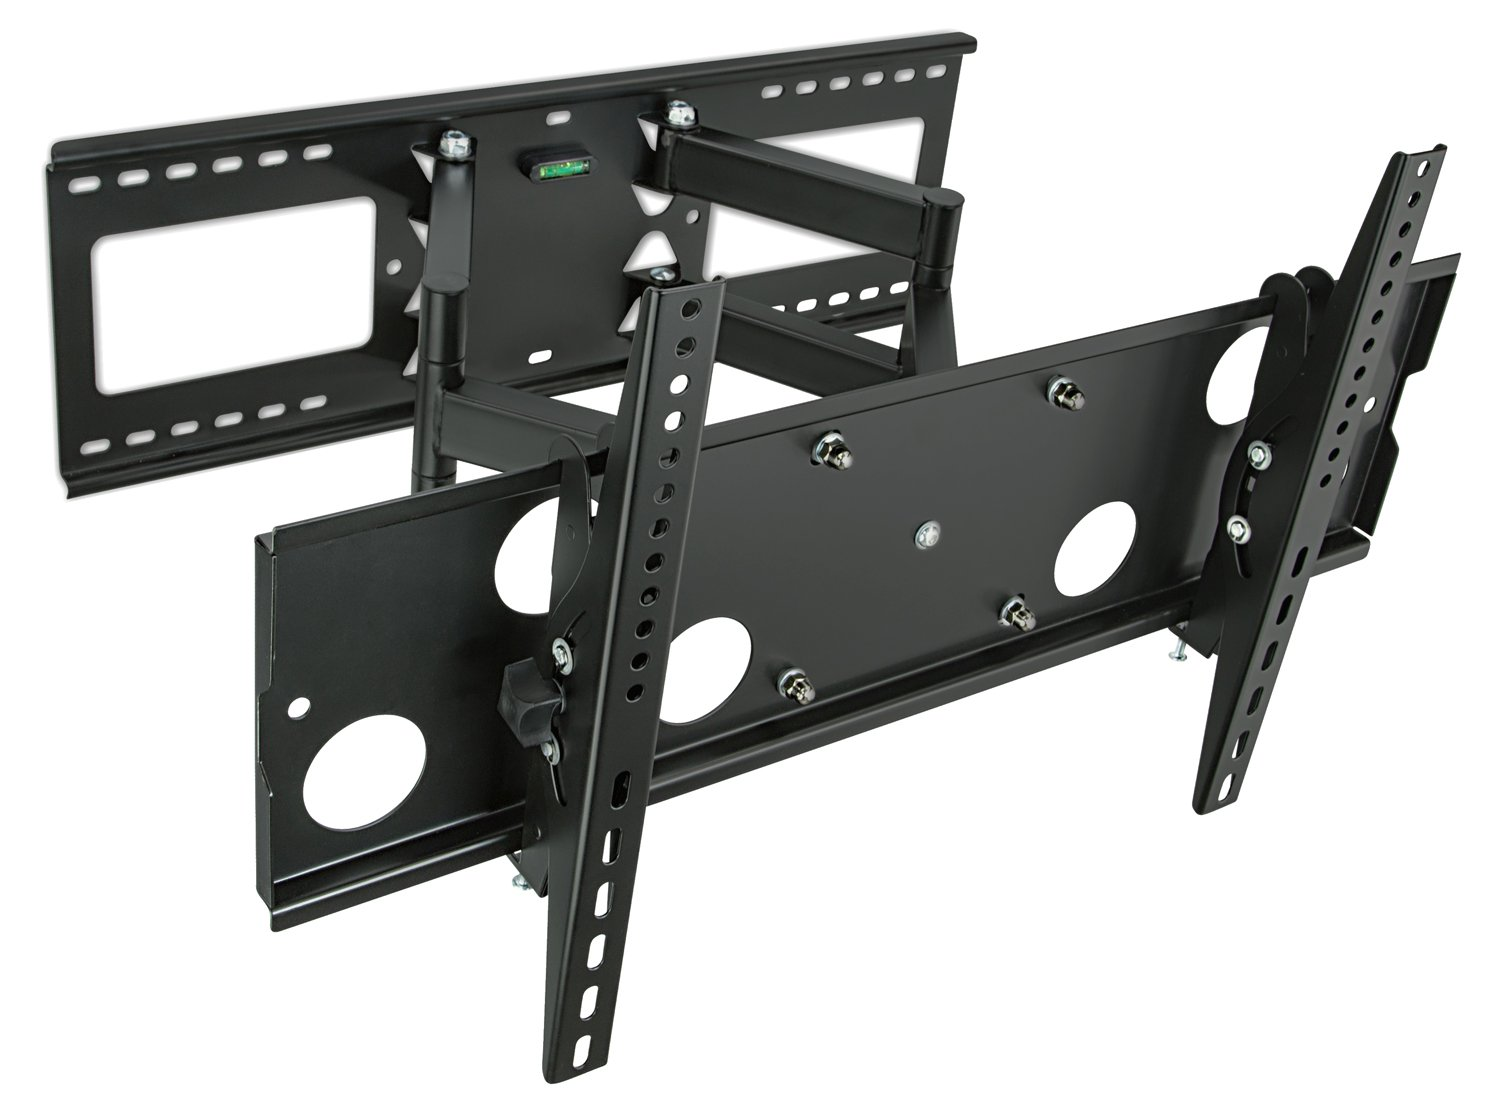 Mount It Full Motion Tv Wall Mount For 16 18 24 Wood Studs Fits 32 65 Lcd Led Plasma Flat Screen Curved Tvs Up To 165 Lbs Includes Hdmi